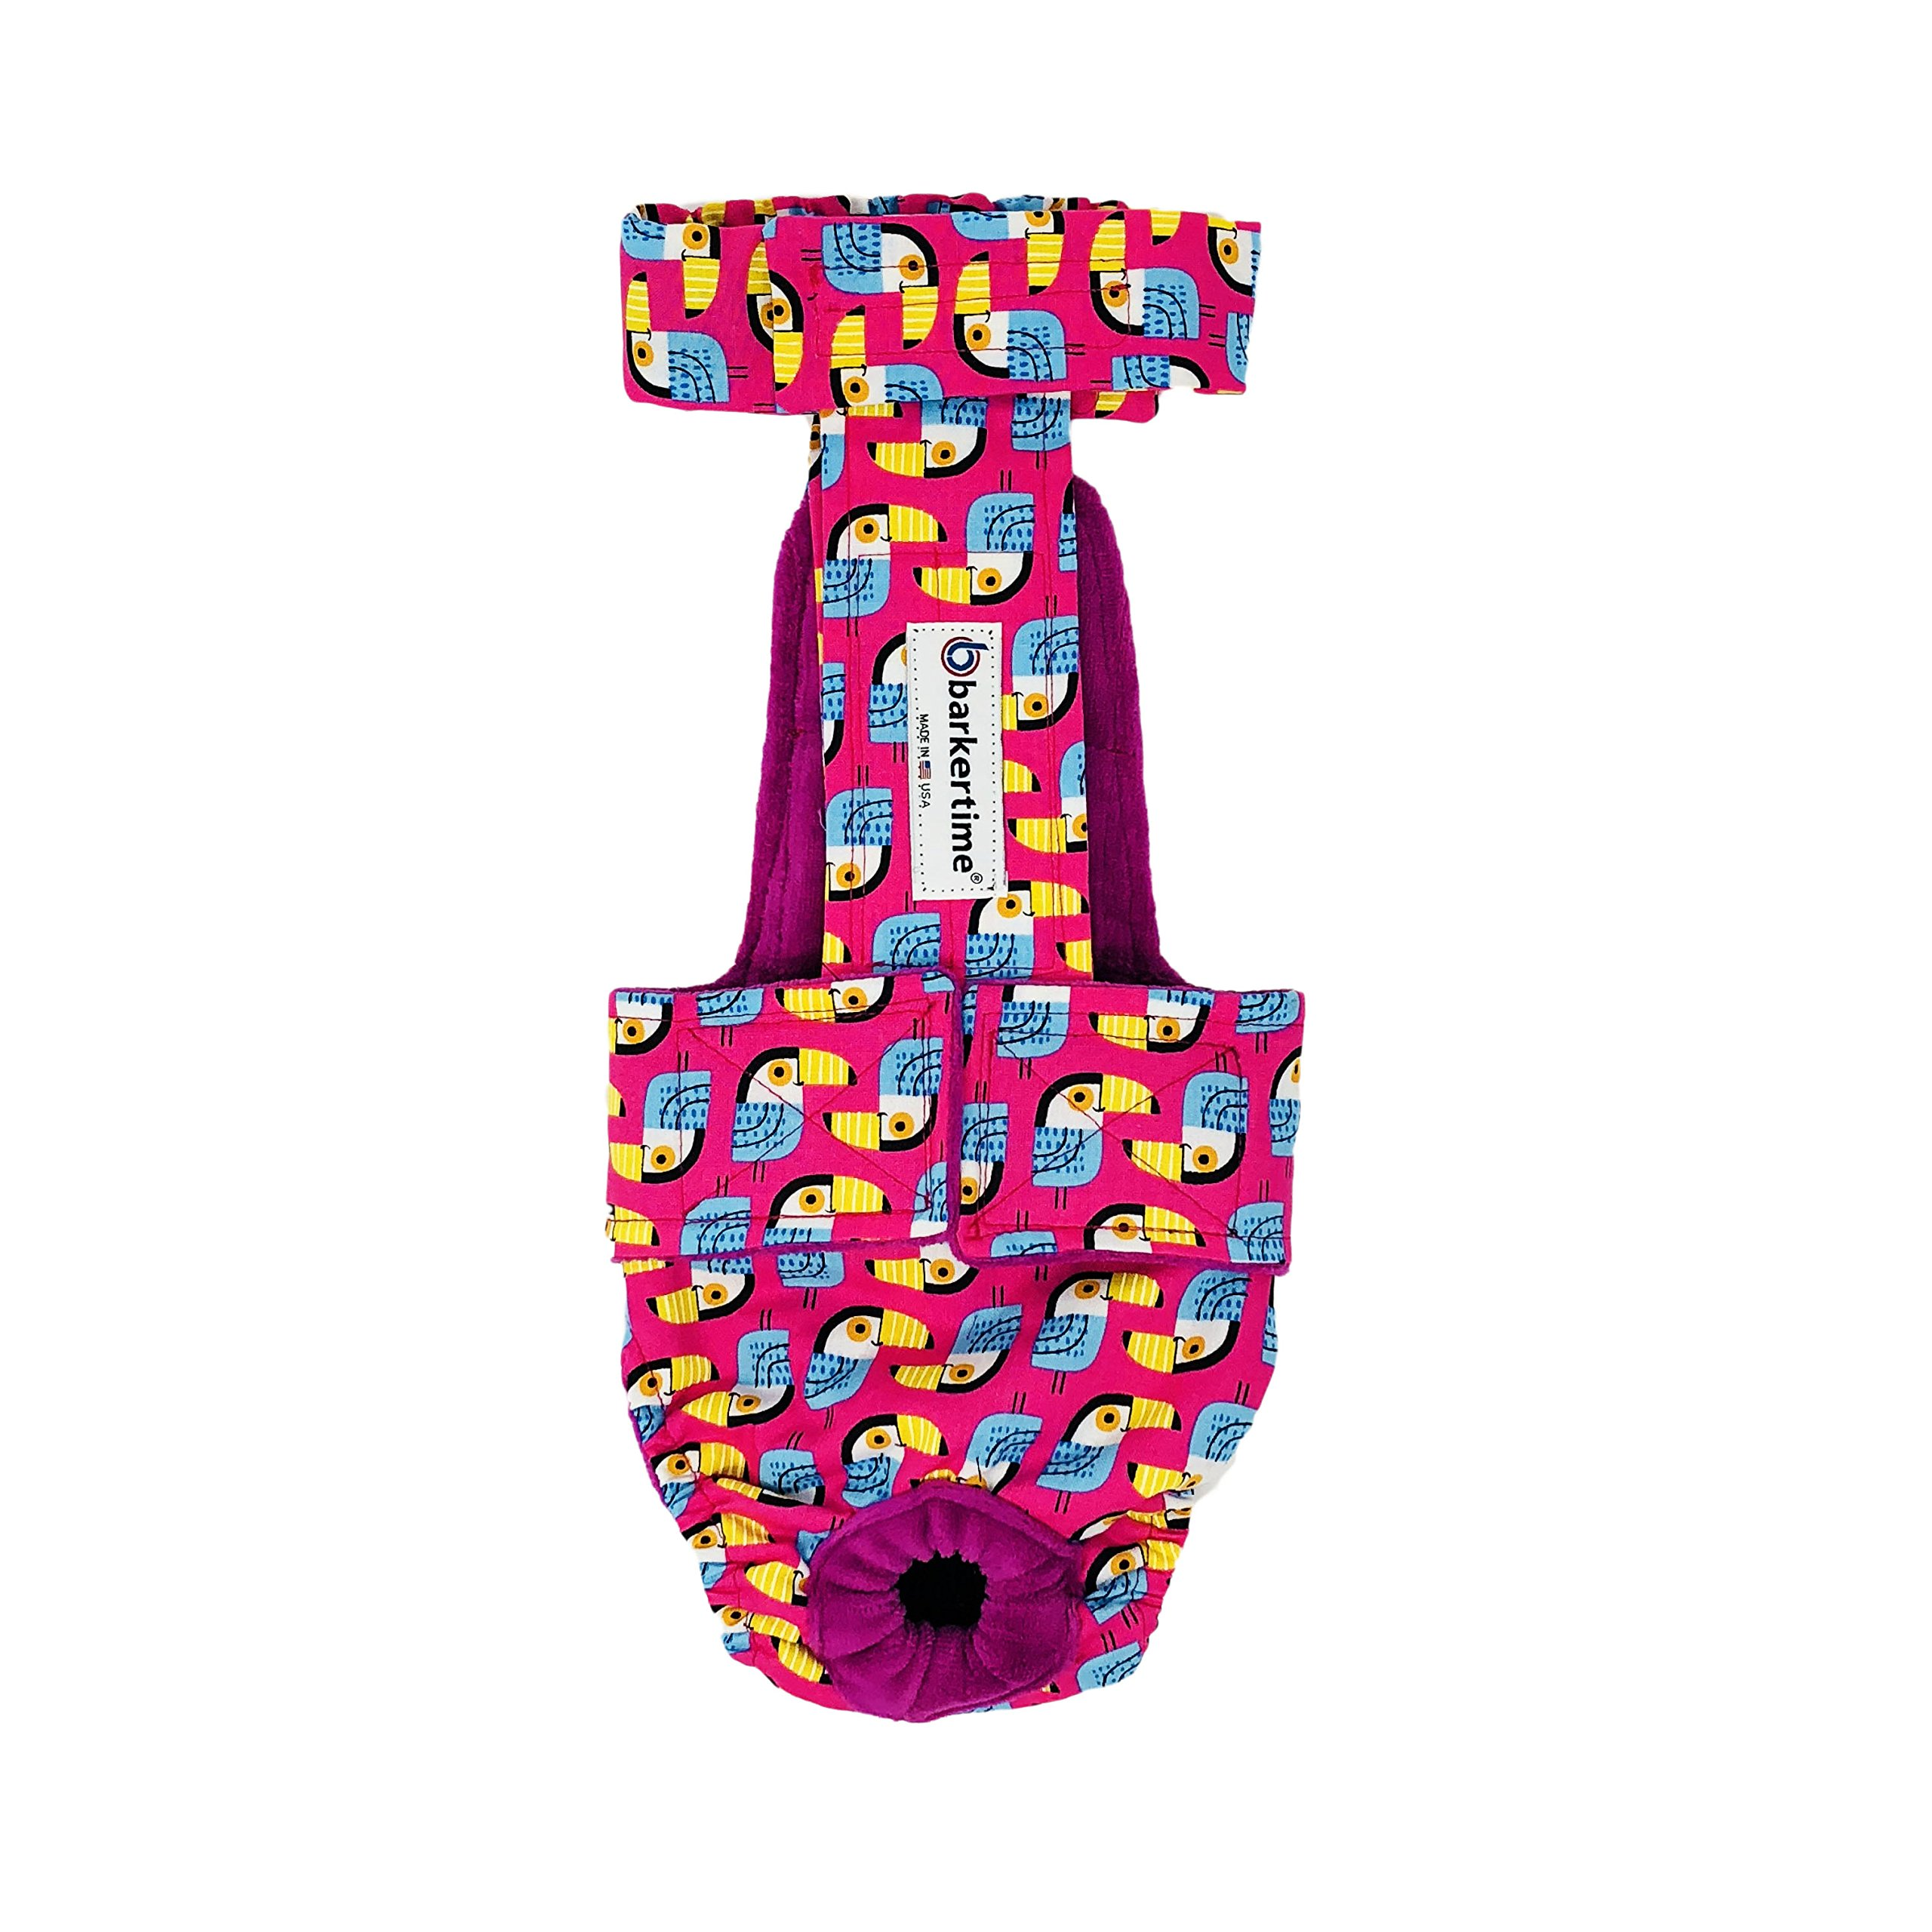 Dog Diaper Overall - Made in USA - Tucane on Pink Escape-Proof Washable Dog Diaper Overall, XXL, With Tail Hole for Dog Incontinence, Marking, Housetraining and Females in Heat